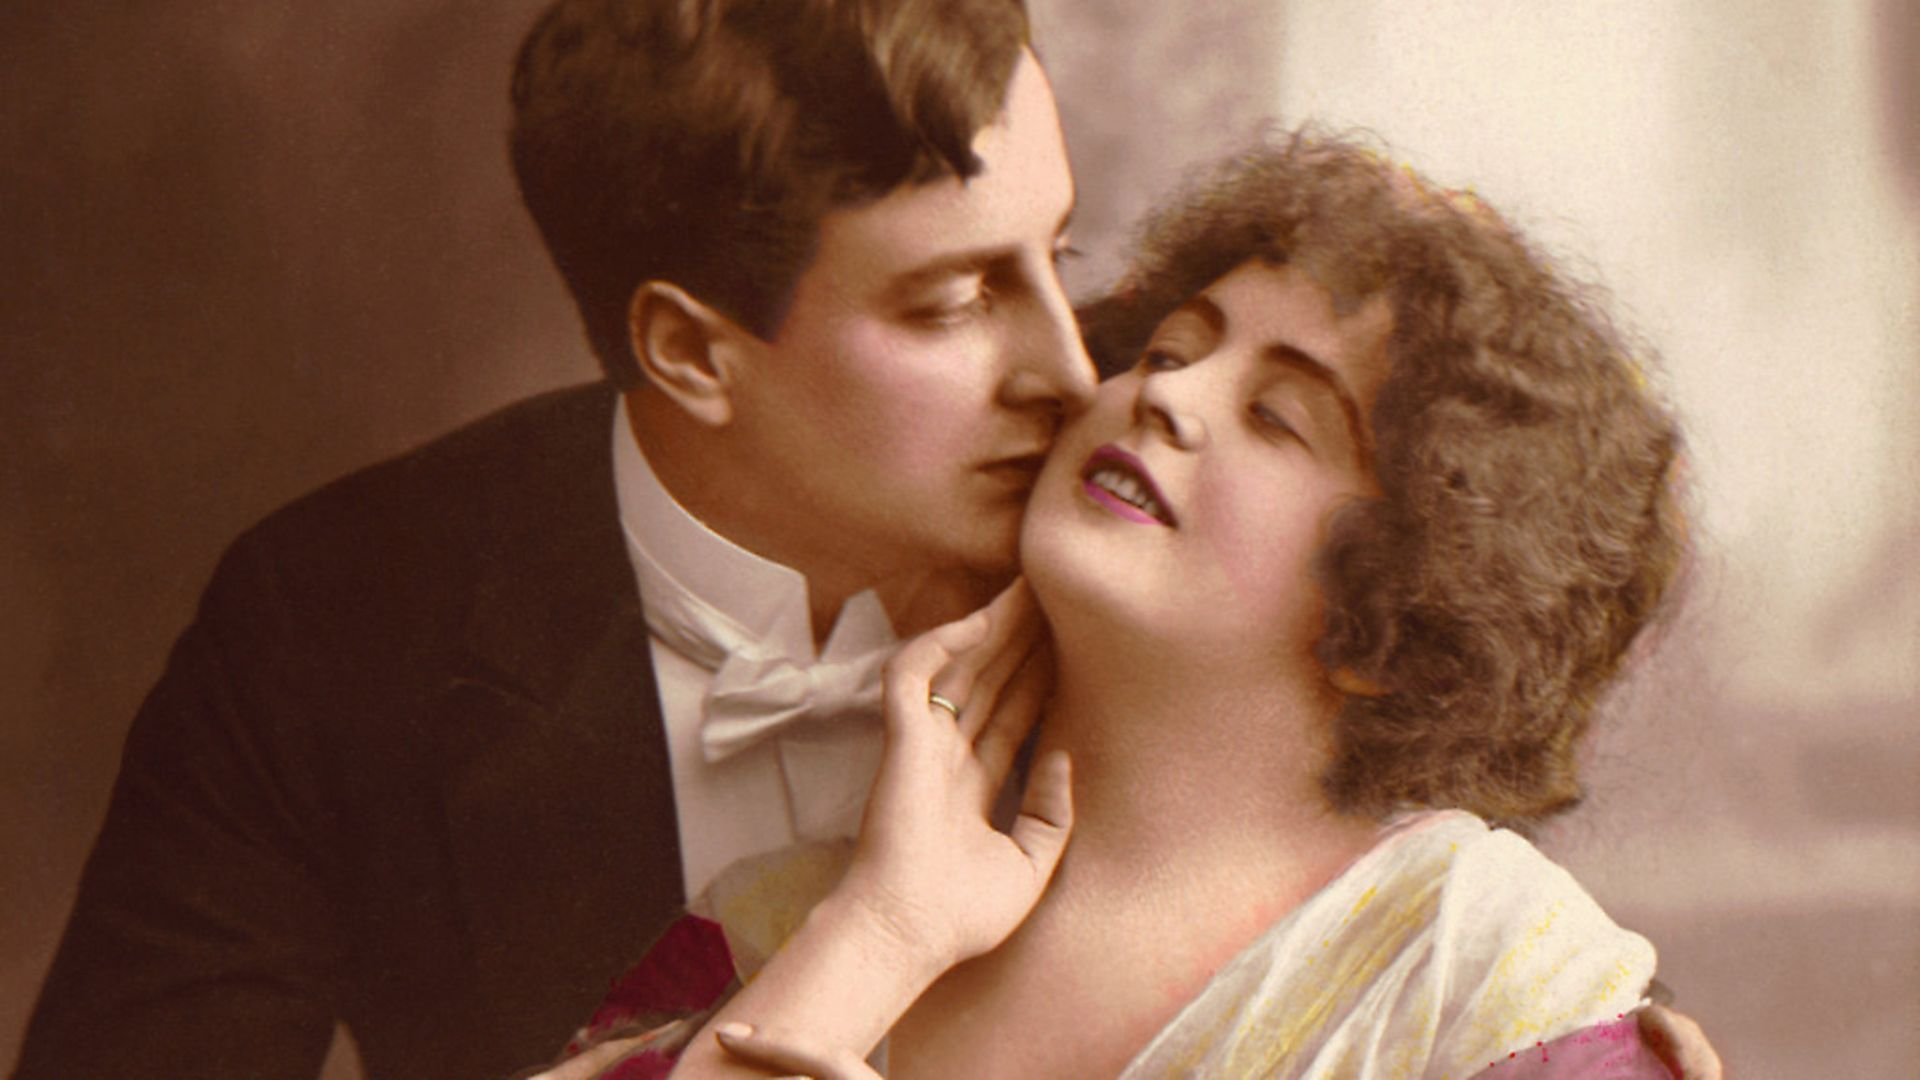 Hand tinted photograph shows a man in evening dress kisses a woman's cheek and embraces her, early 20th Century. (Photo by Stock Montage/Getty Images) - Credit: Getty Images